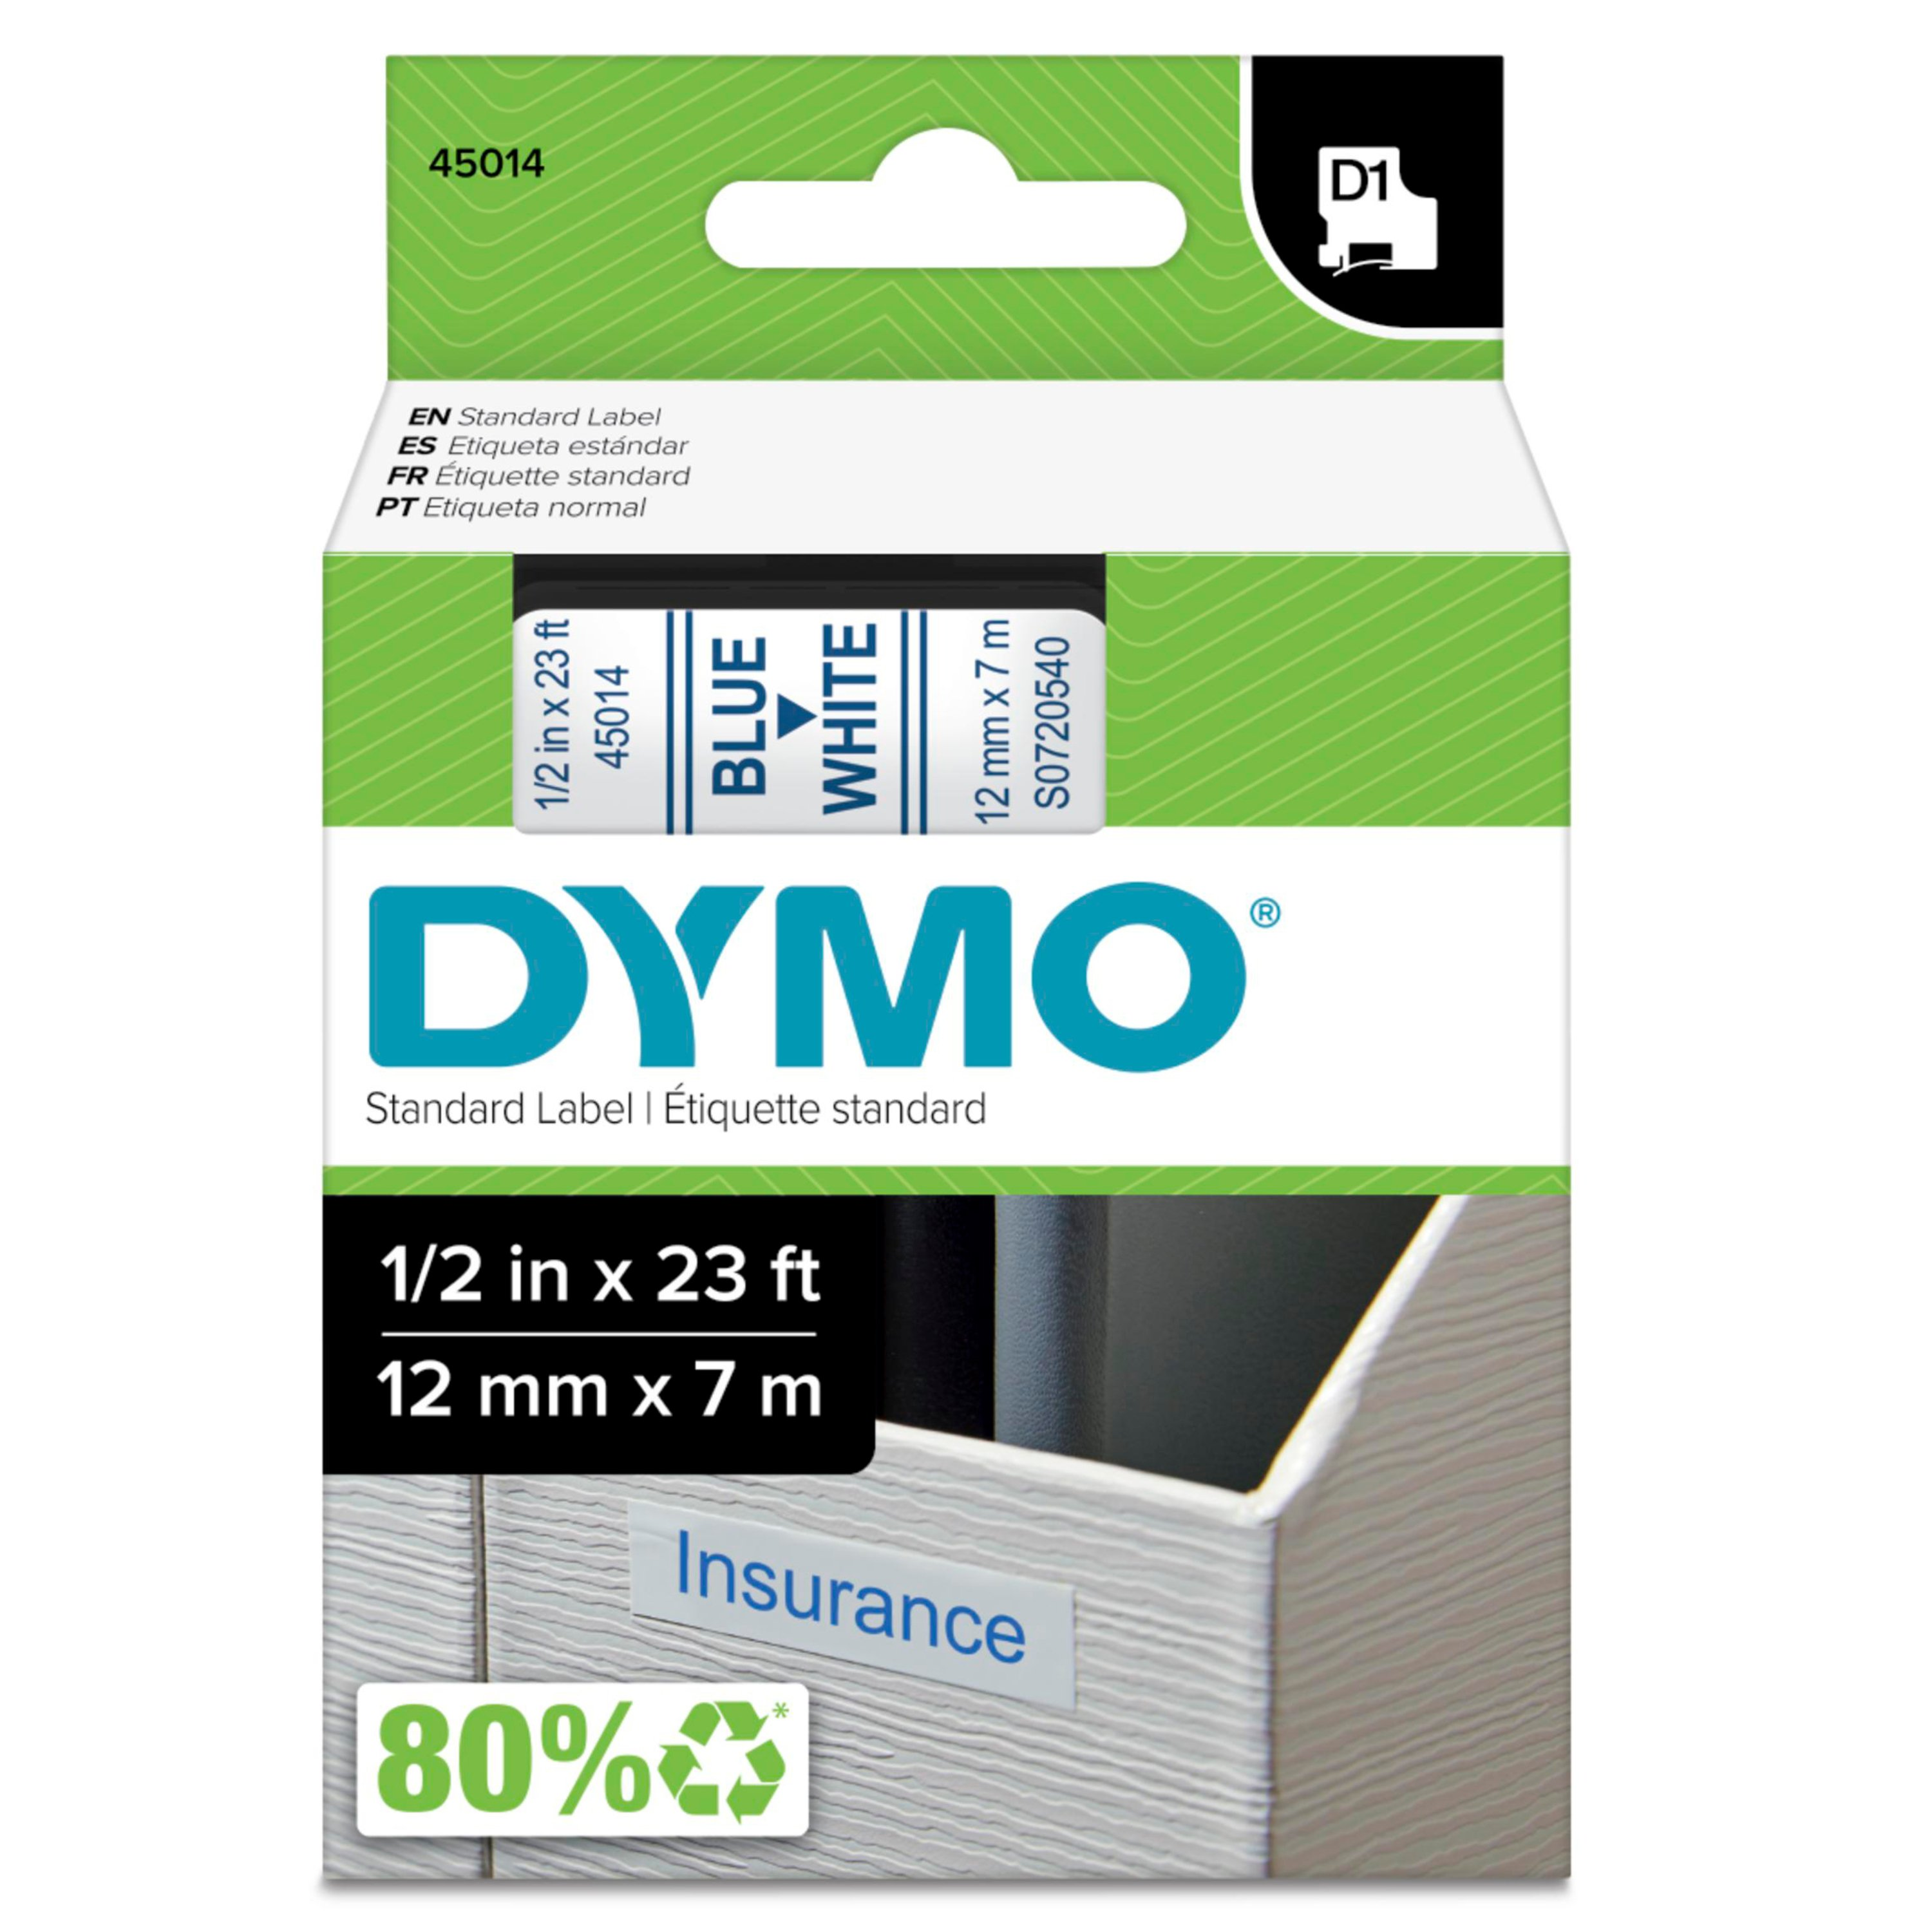 "D1 High-Performance Polyester Removable Label Tape, 1/2"" x 23 ft, Blue on White"